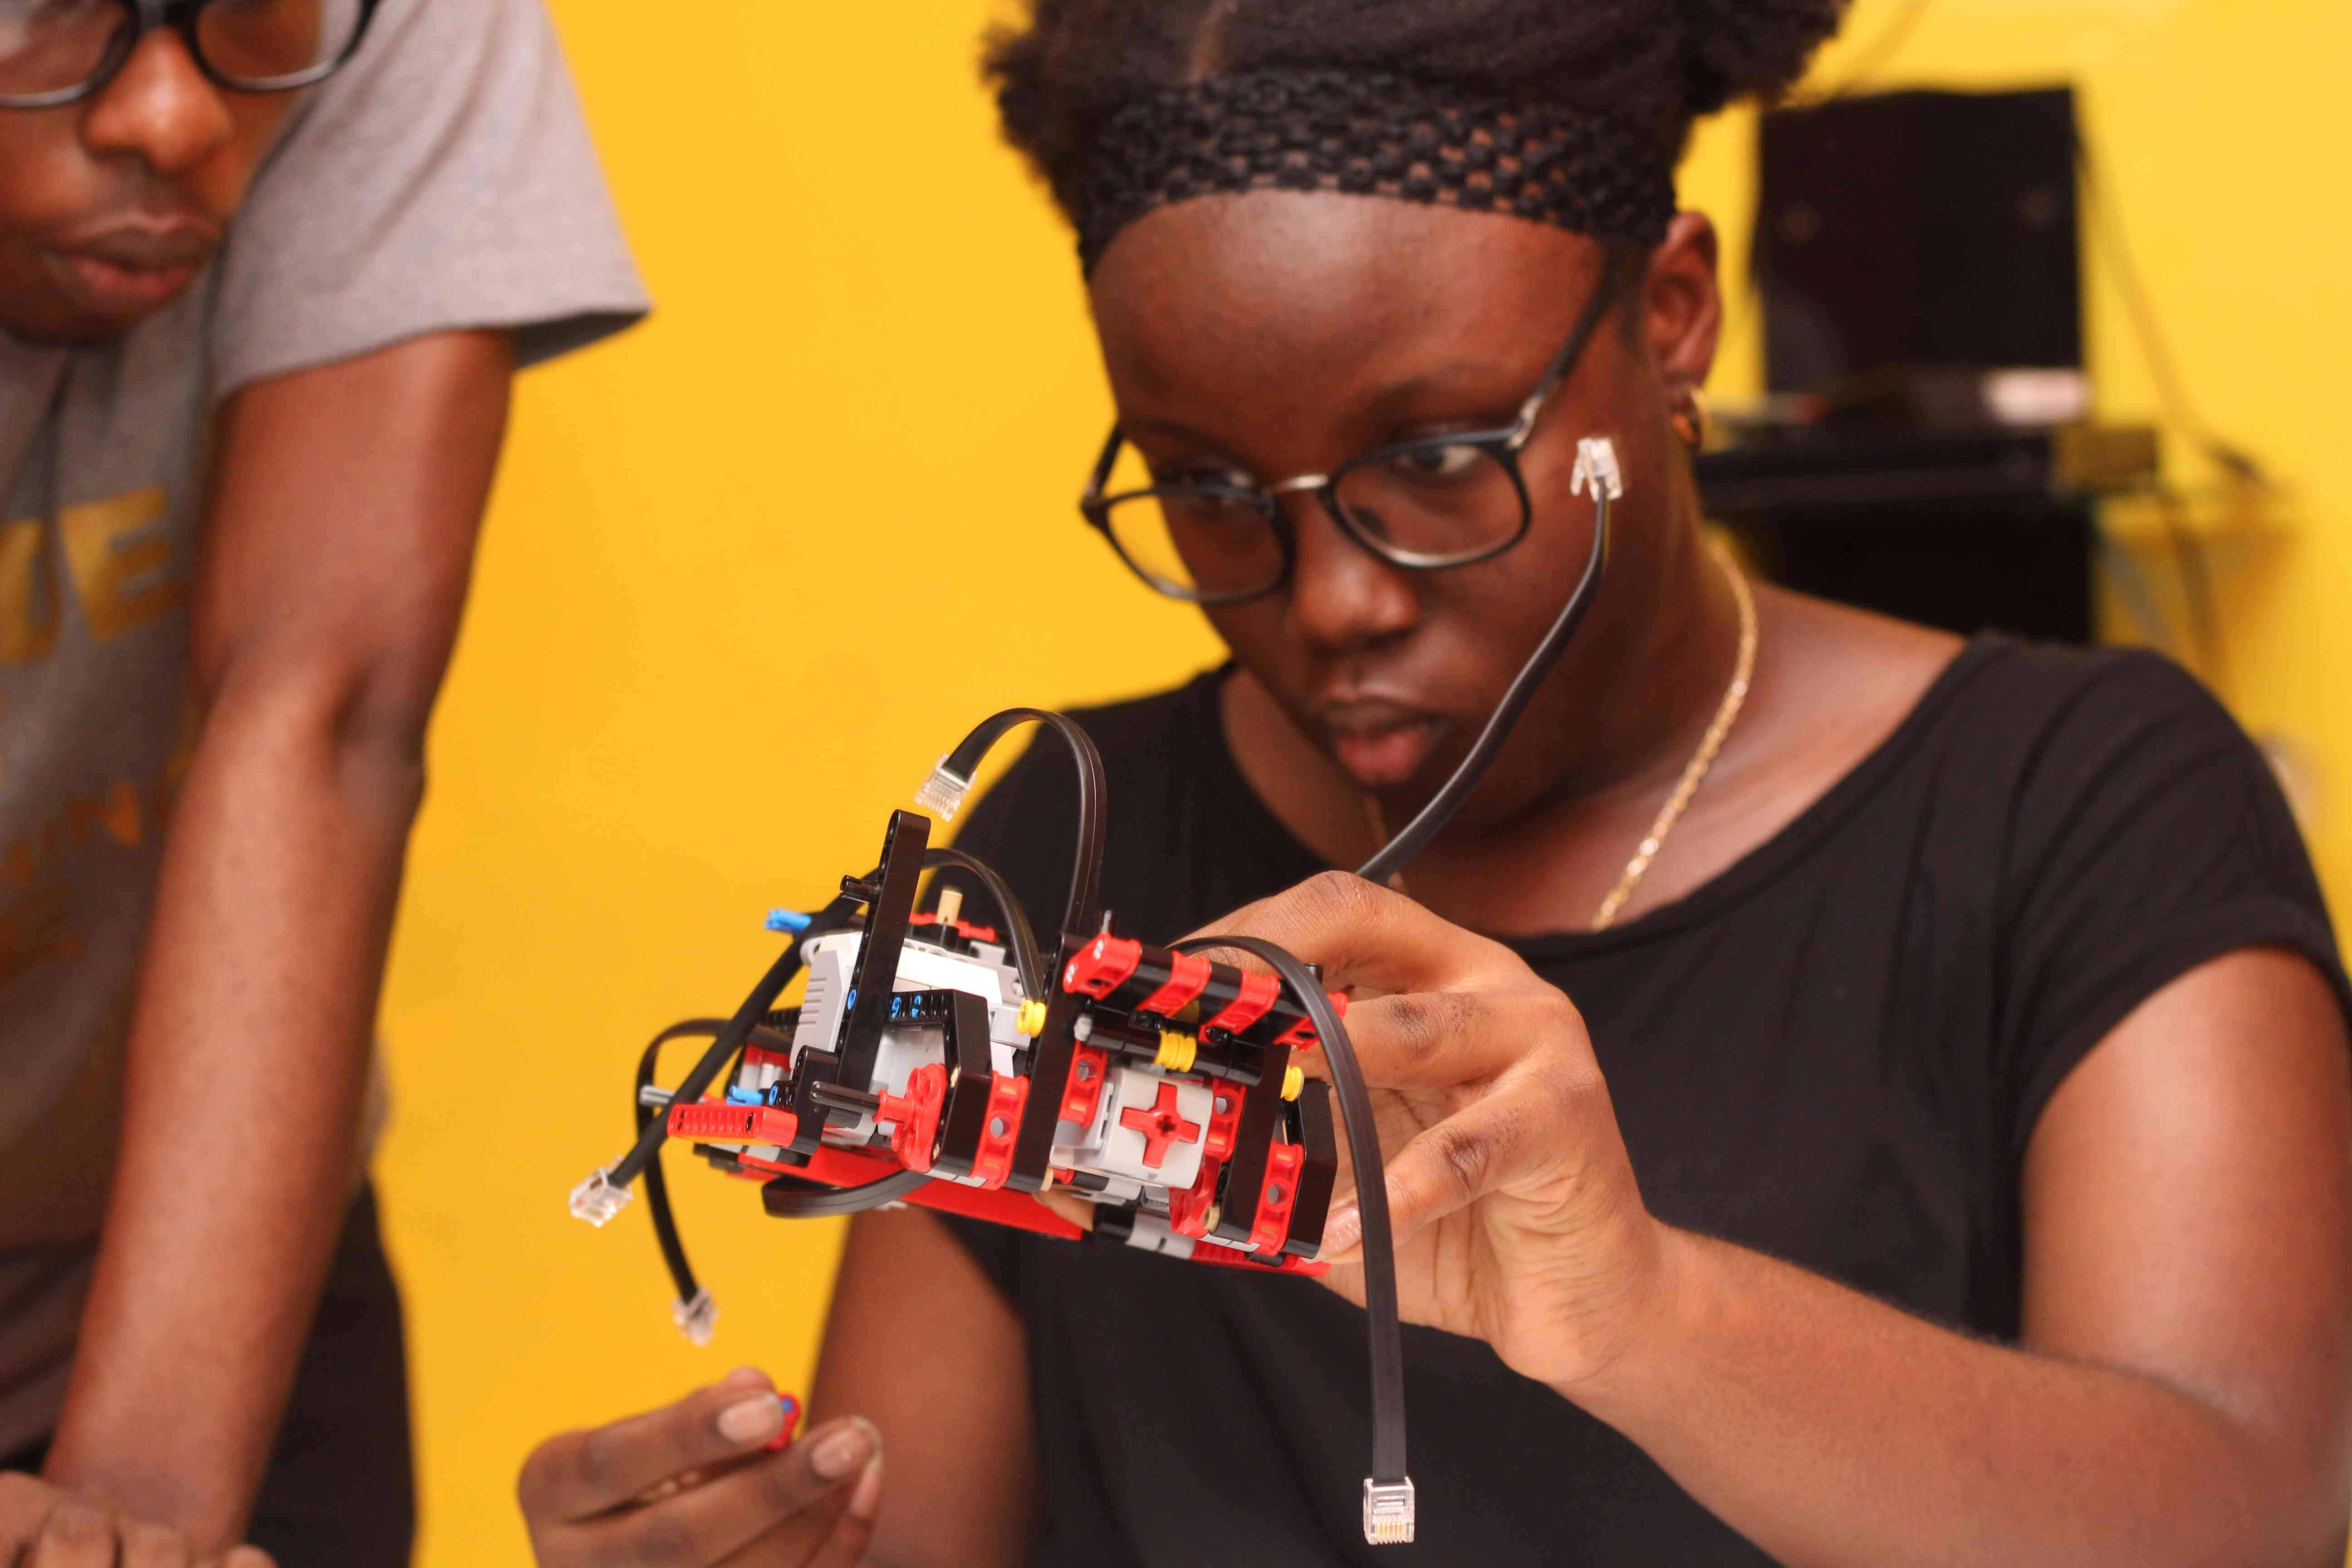 9jacodekids Academy coding programming robotics classes for kids children in Port Harcourt Abuja Lagos